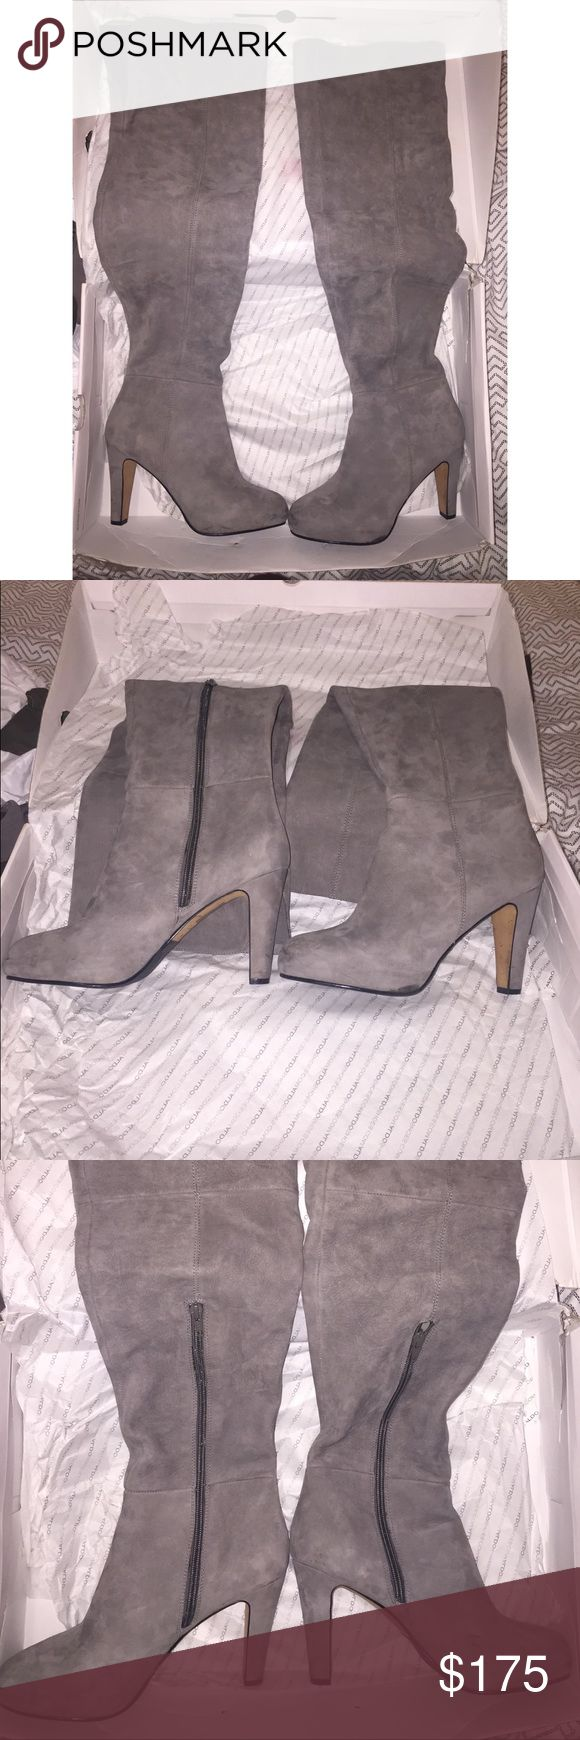 Aldo bannari over the knee boots in grey suede Over the knee thigh high boots that actually STAY UP Beautiful grey suede Brand new boots with box Weren't for me, I am way too tall already :( Aldo Shoes Over the Knee Boots